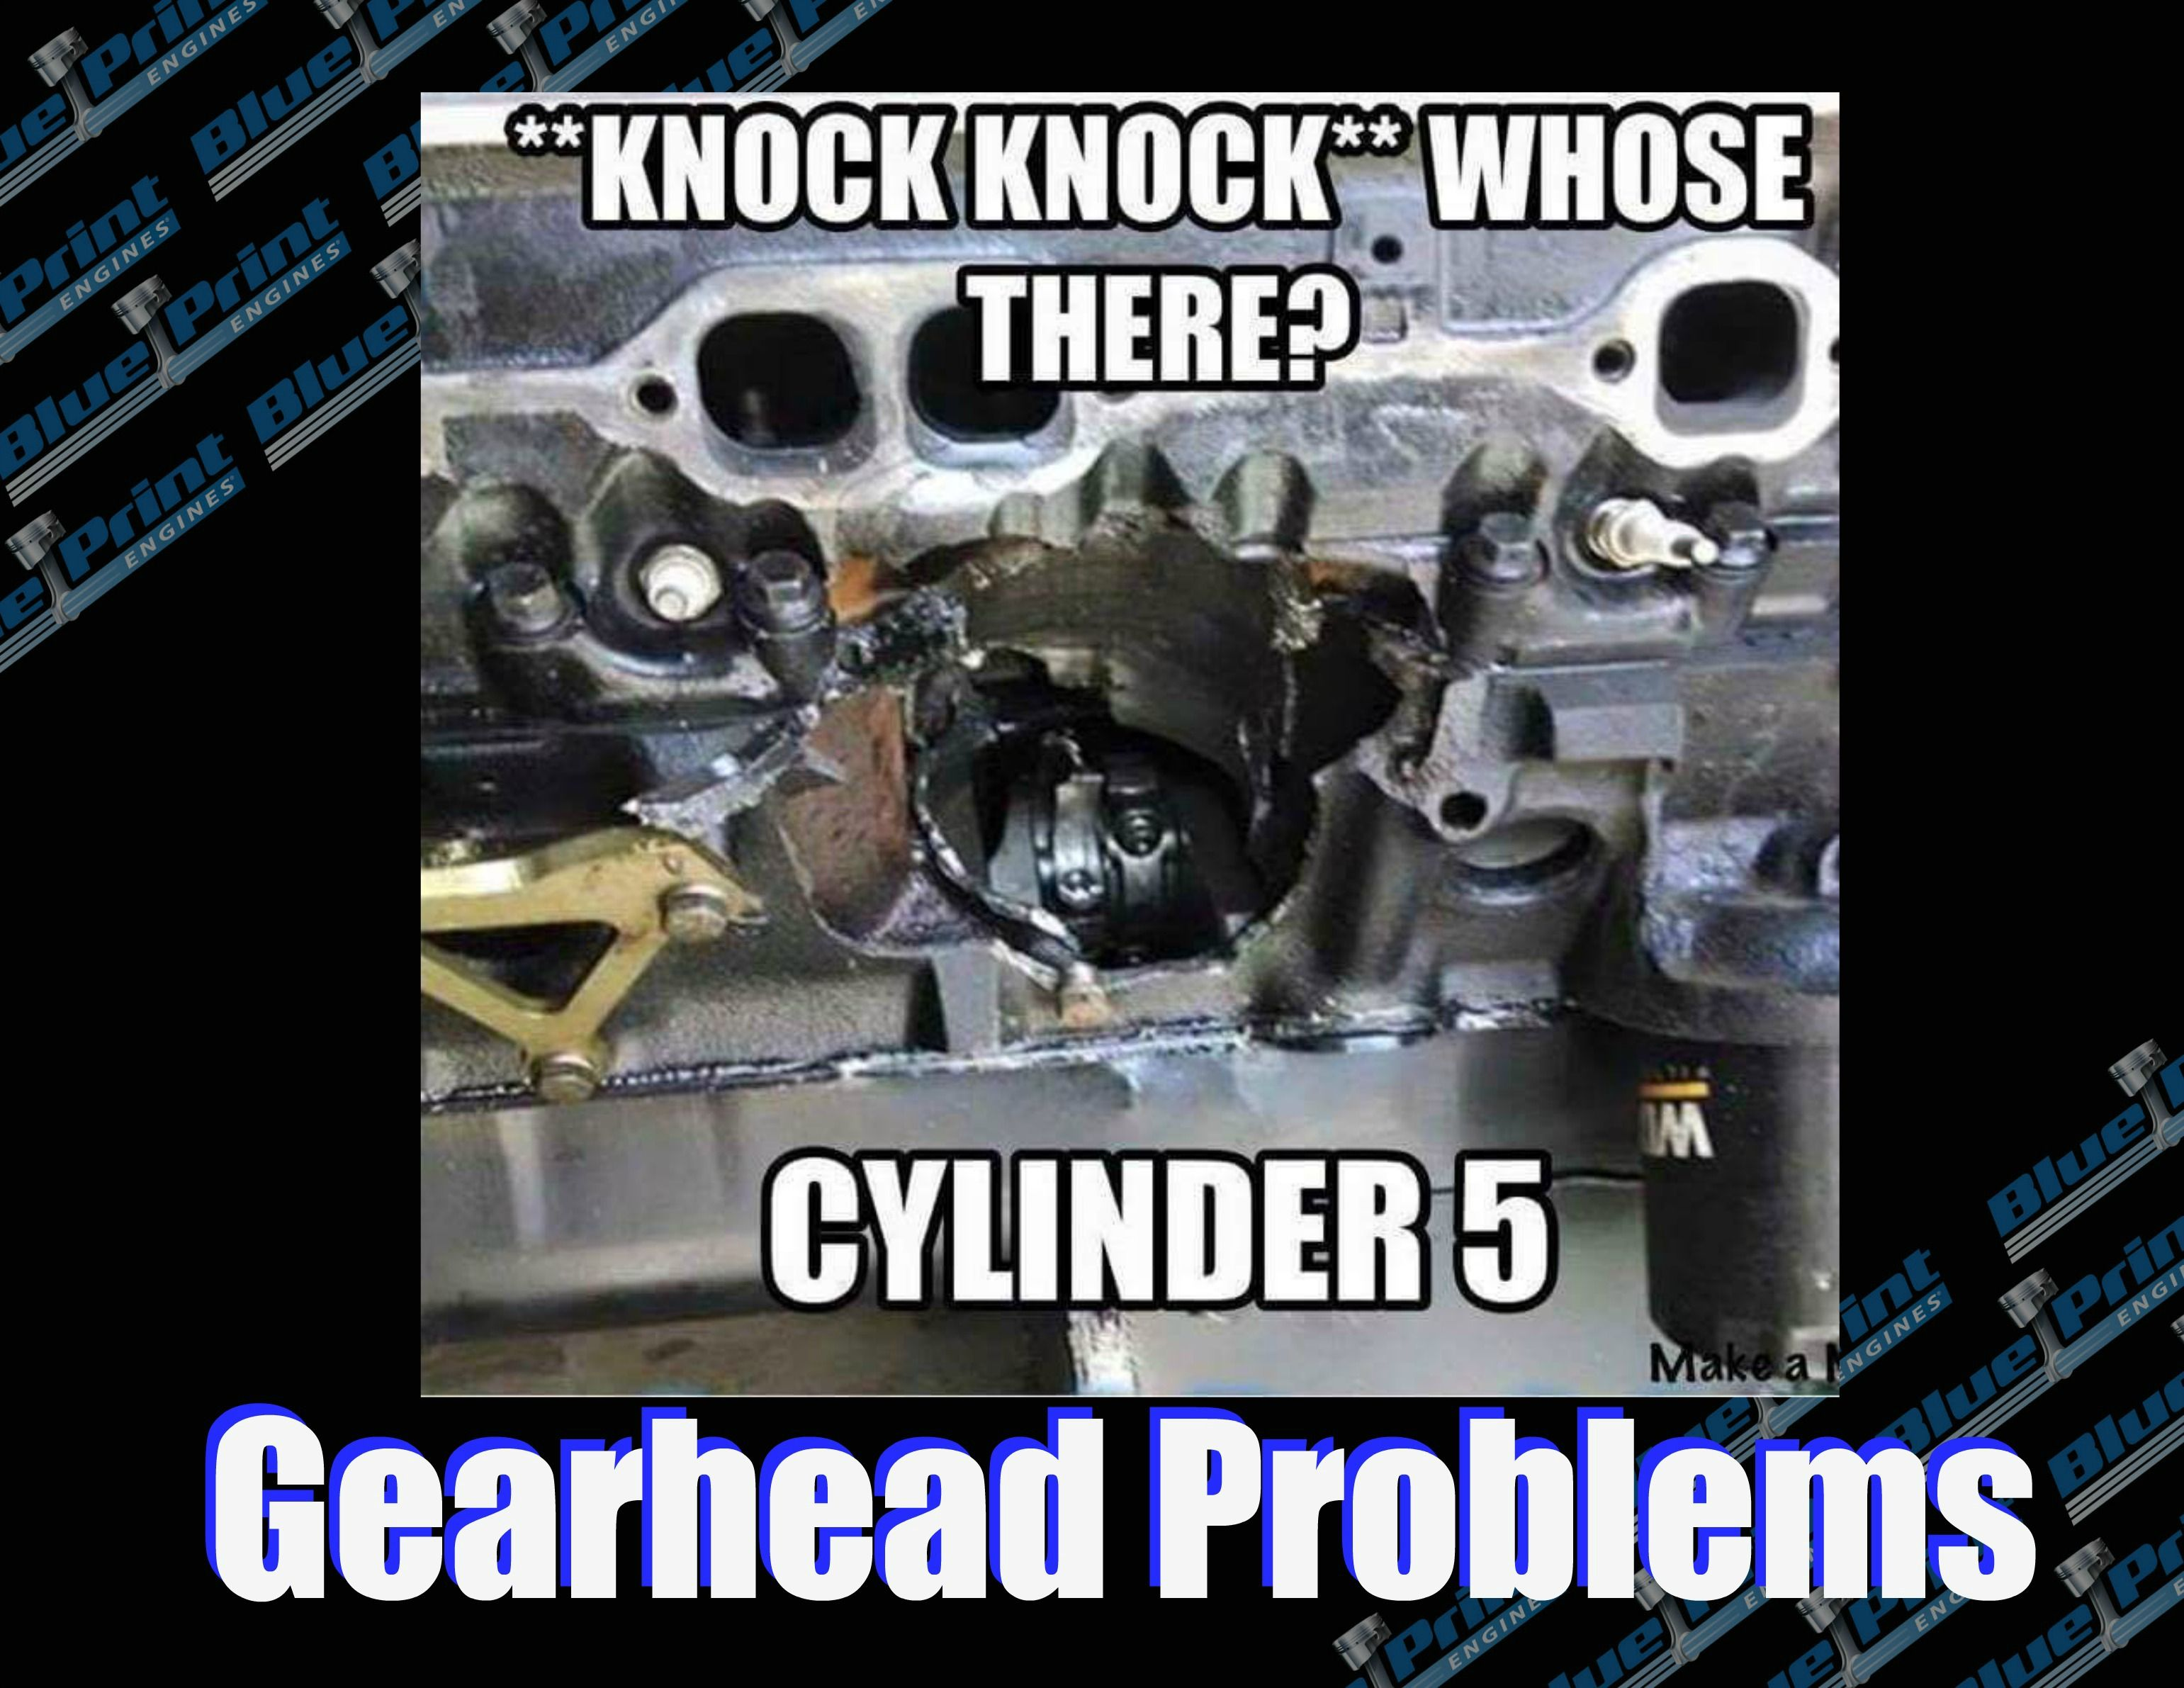 Bummer if this happens to you call us at blueprint engines today if this happens to you call us at blueprint engines today to speak to a product specialist 800 843 4263 blueprintengines knockknock gearheadproblems malvernweather Image collections